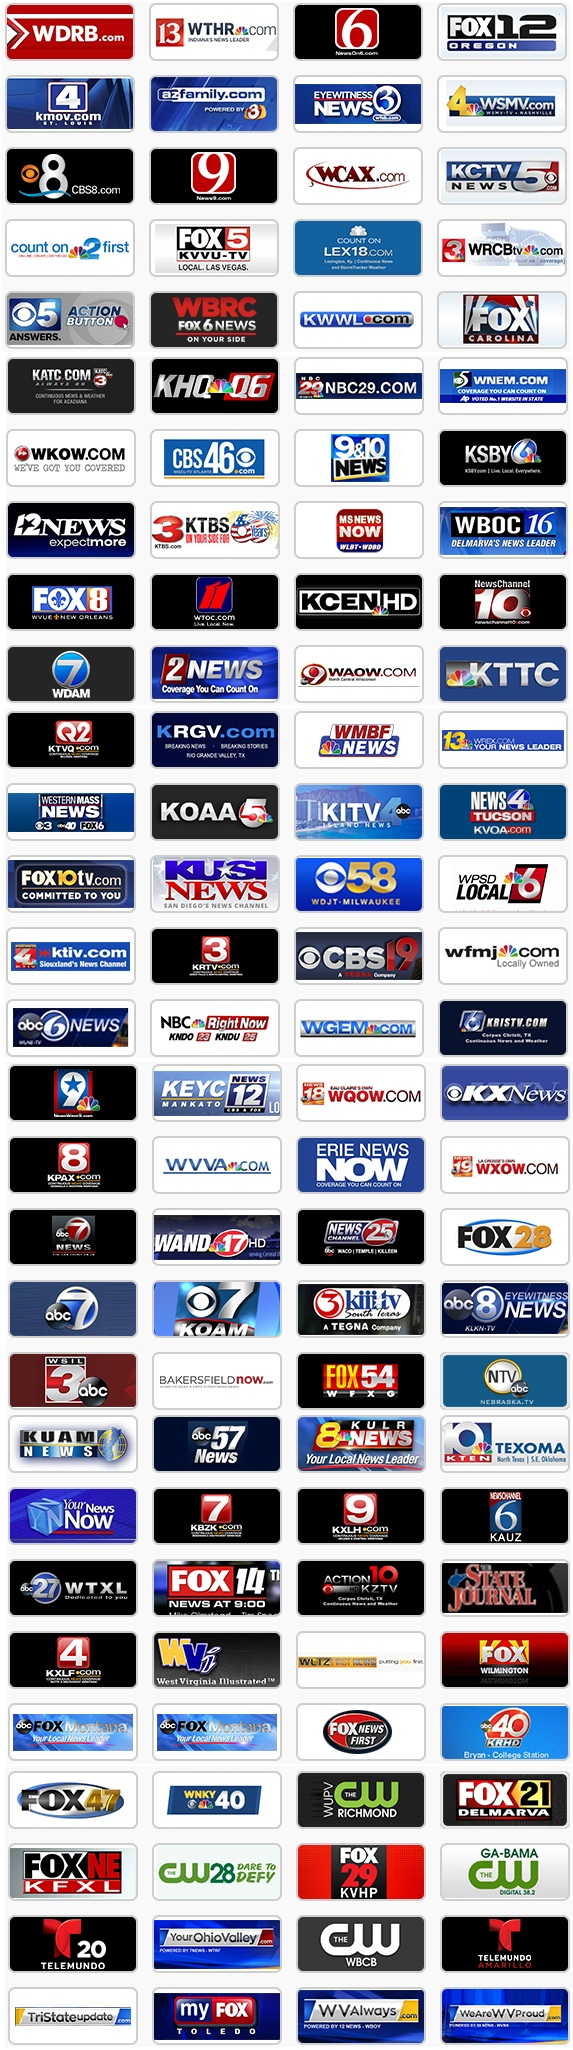 TV Radio Sites